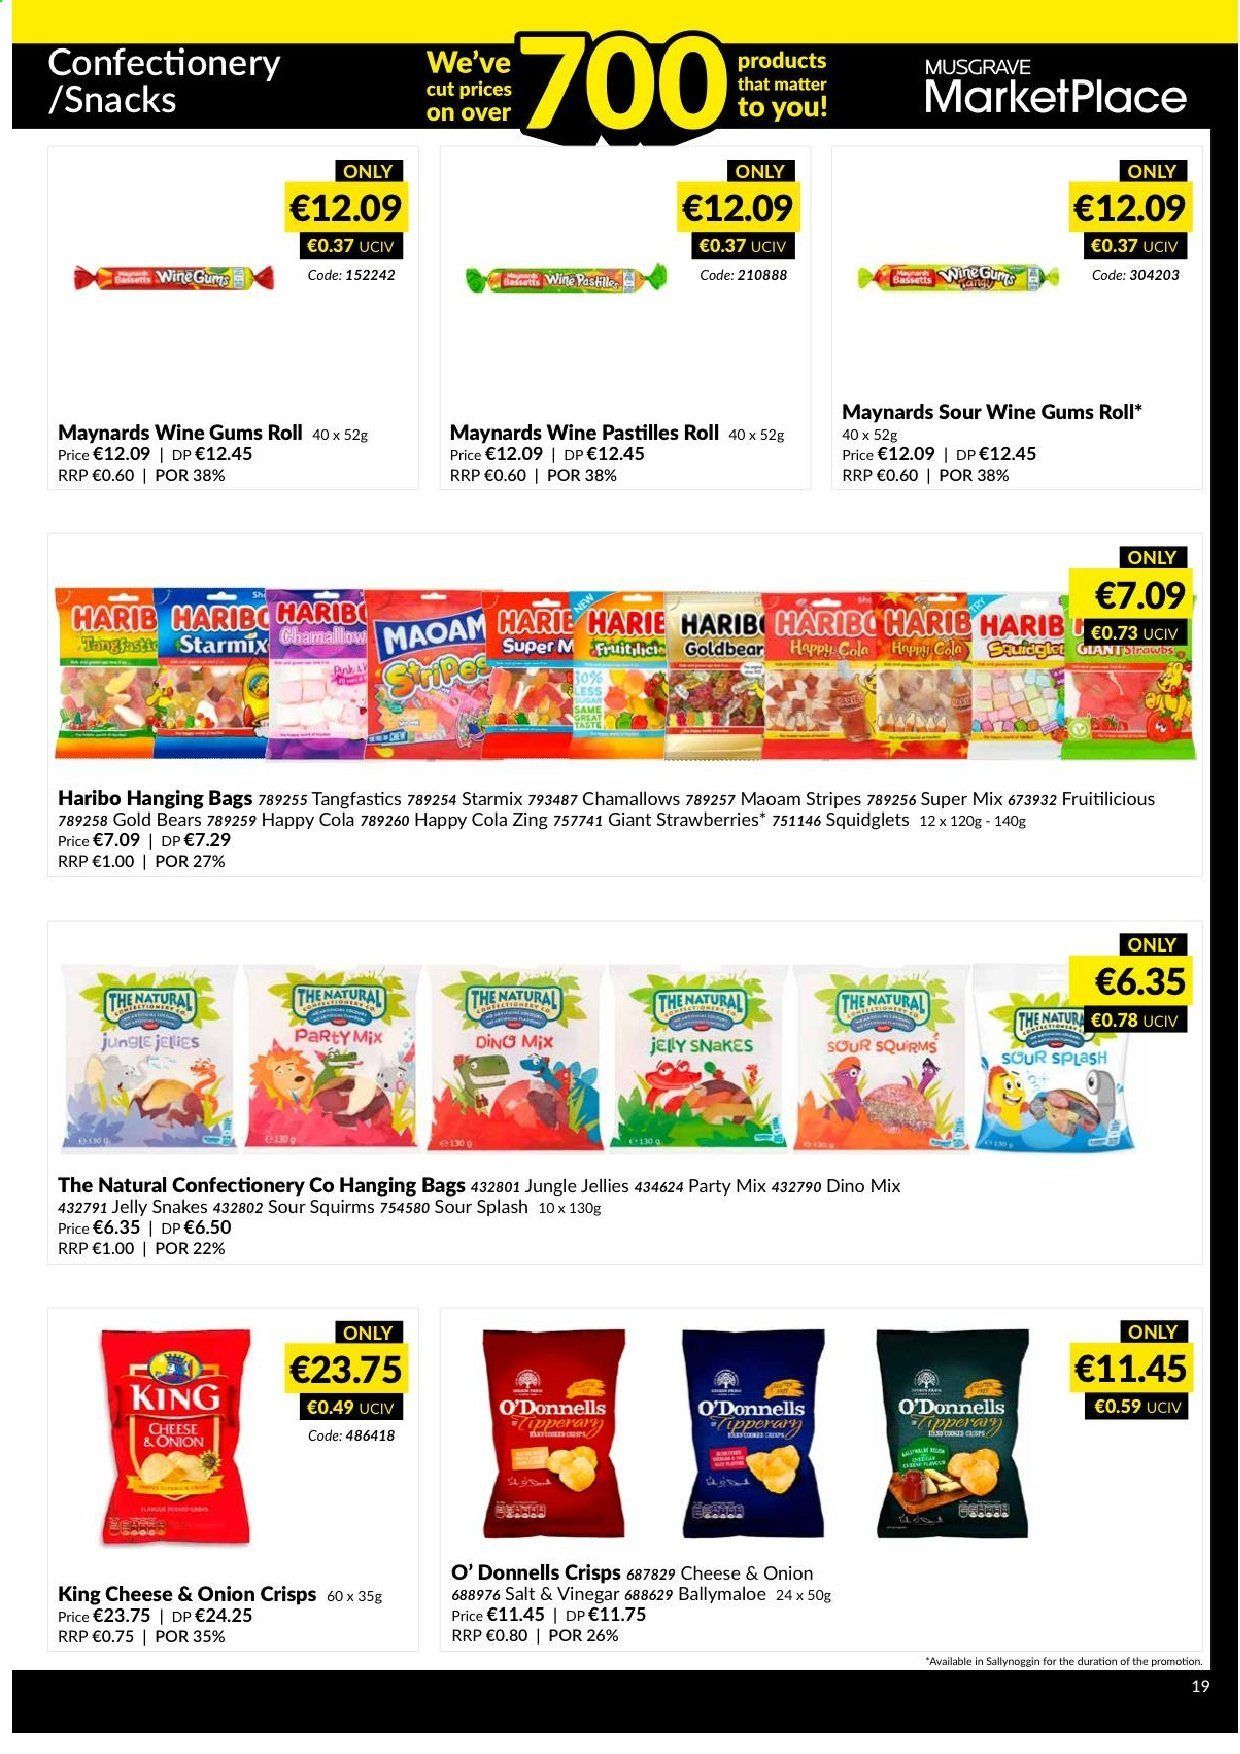 MUSGRAVE Market Place offer  - 4.8.2019 - 31.8.2019 - Sales products - bag, strawberries, vinegar, onion, cheese, salt, haribo, wine. Page 18.